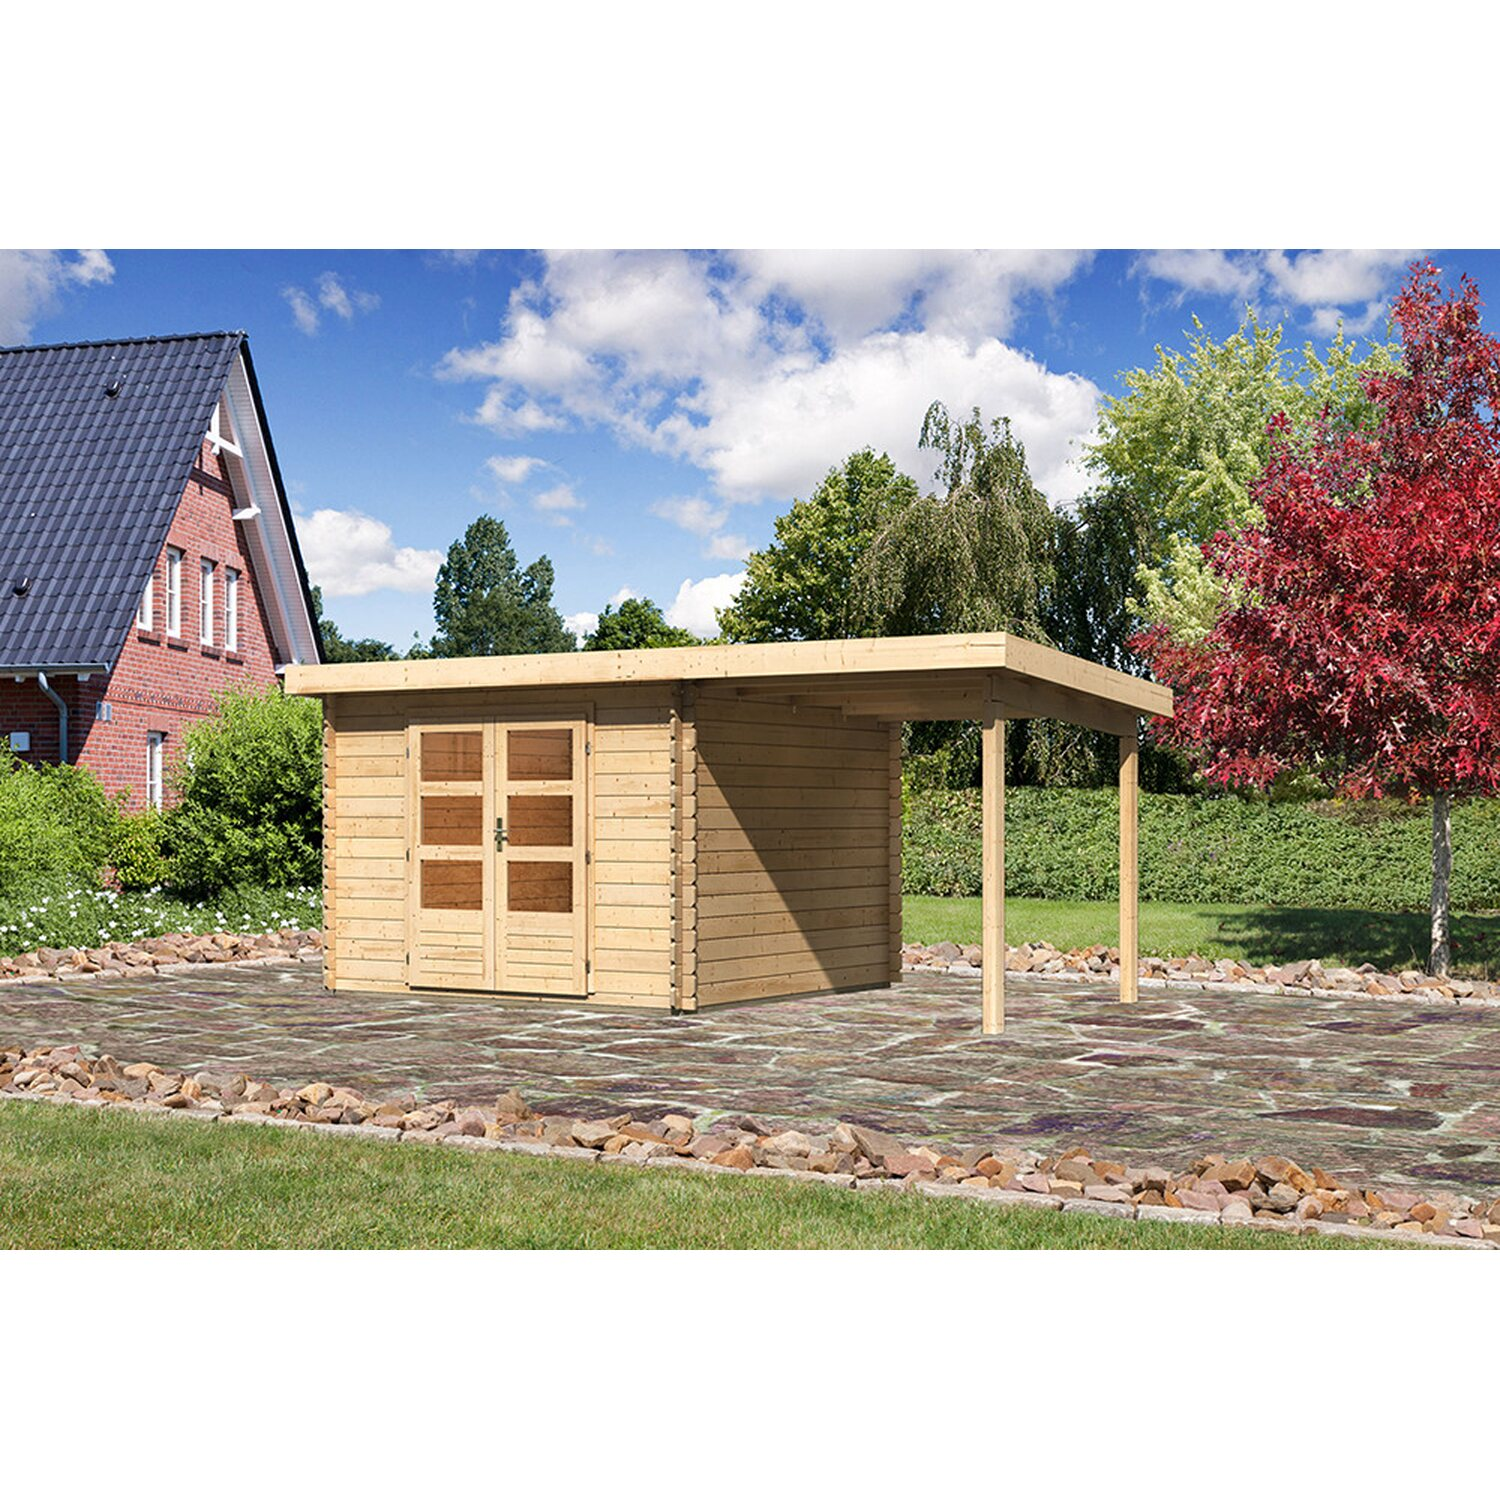 karibu holz gartenhaus ngelholm 5 natur set bxt 480x280. Black Bedroom Furniture Sets. Home Design Ideas